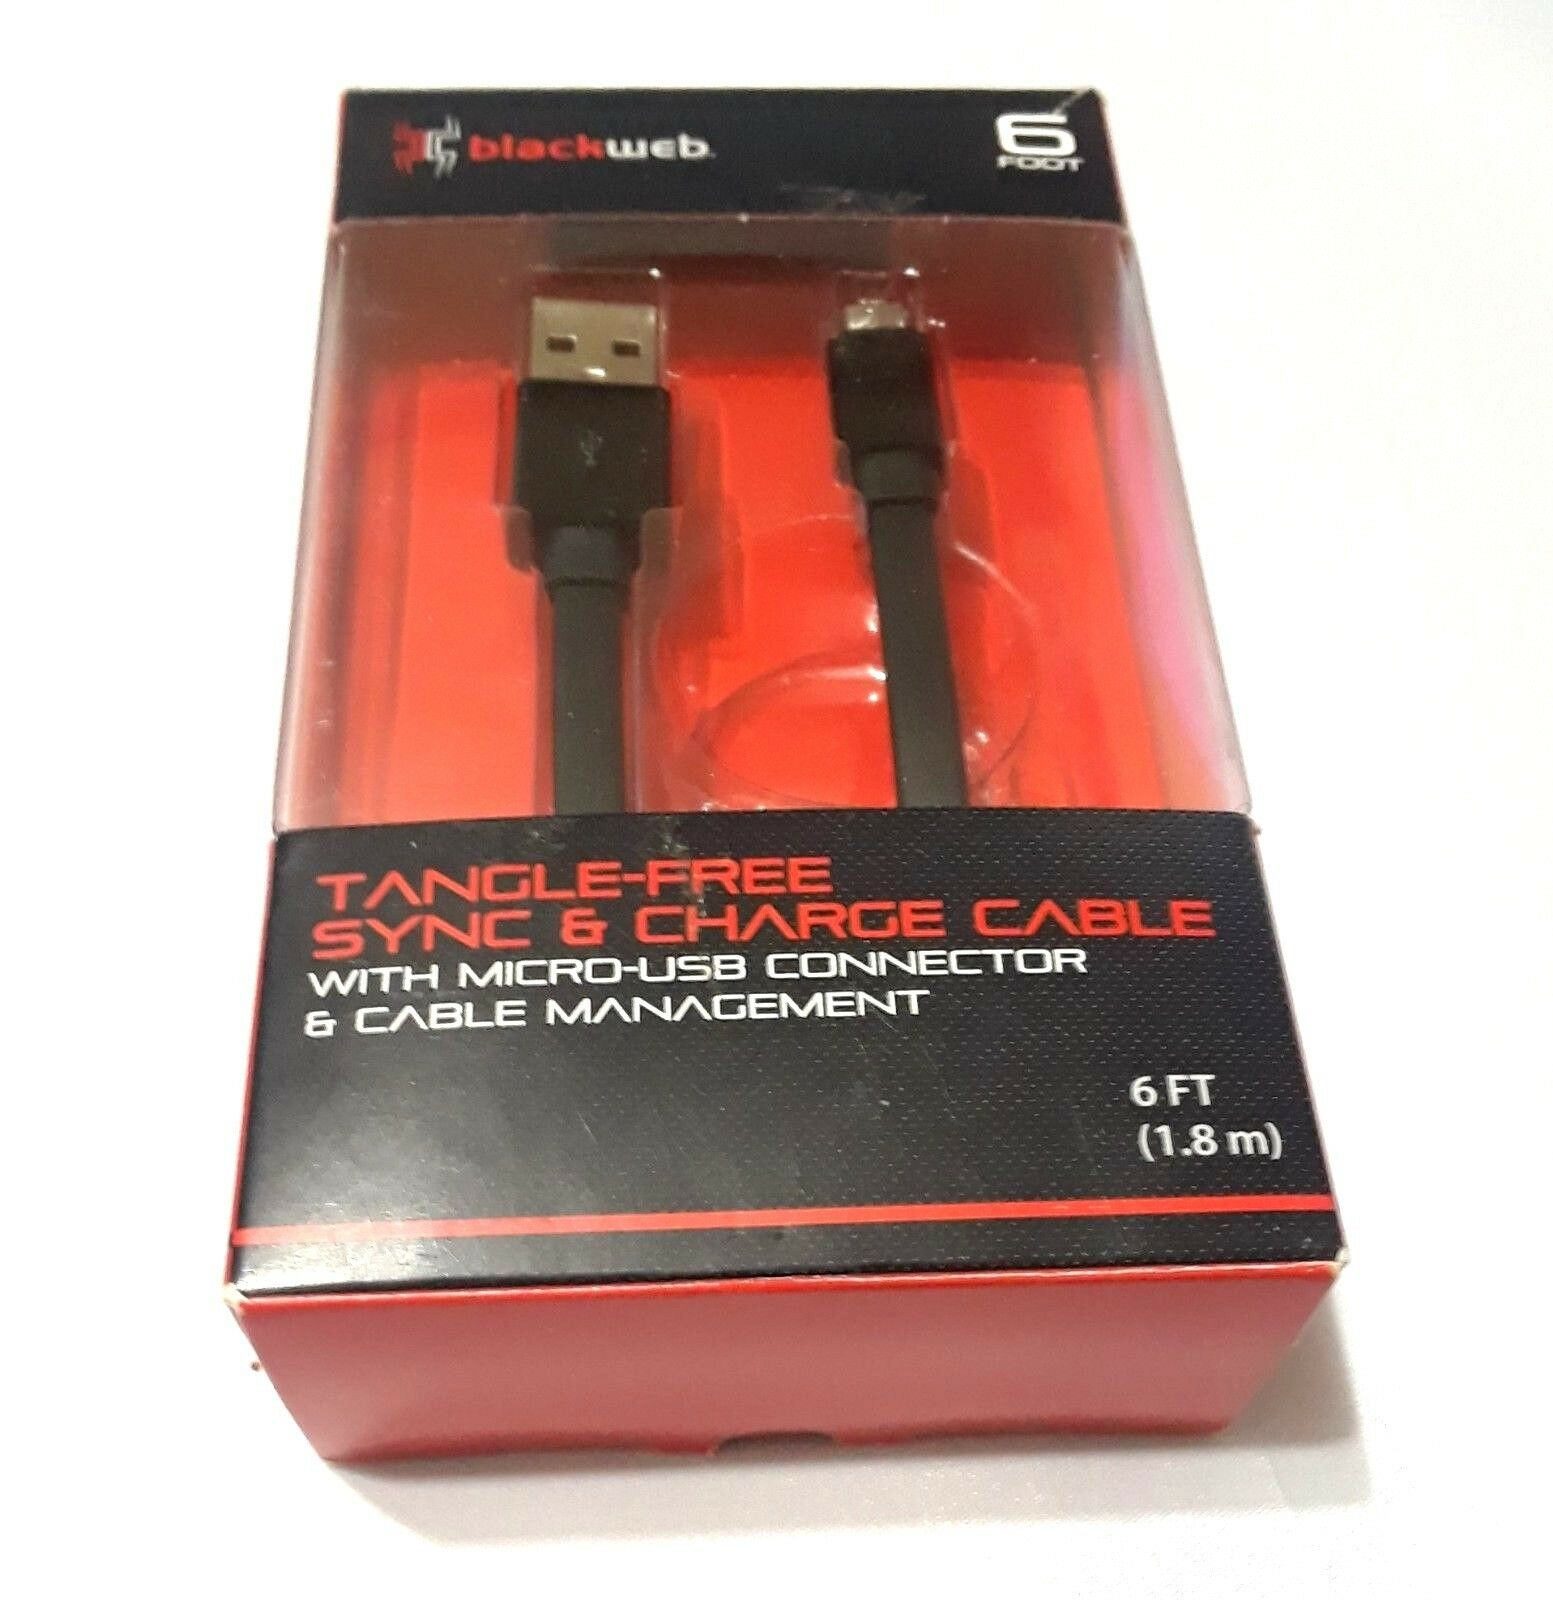 blackweb tangle free sync and charge cable review